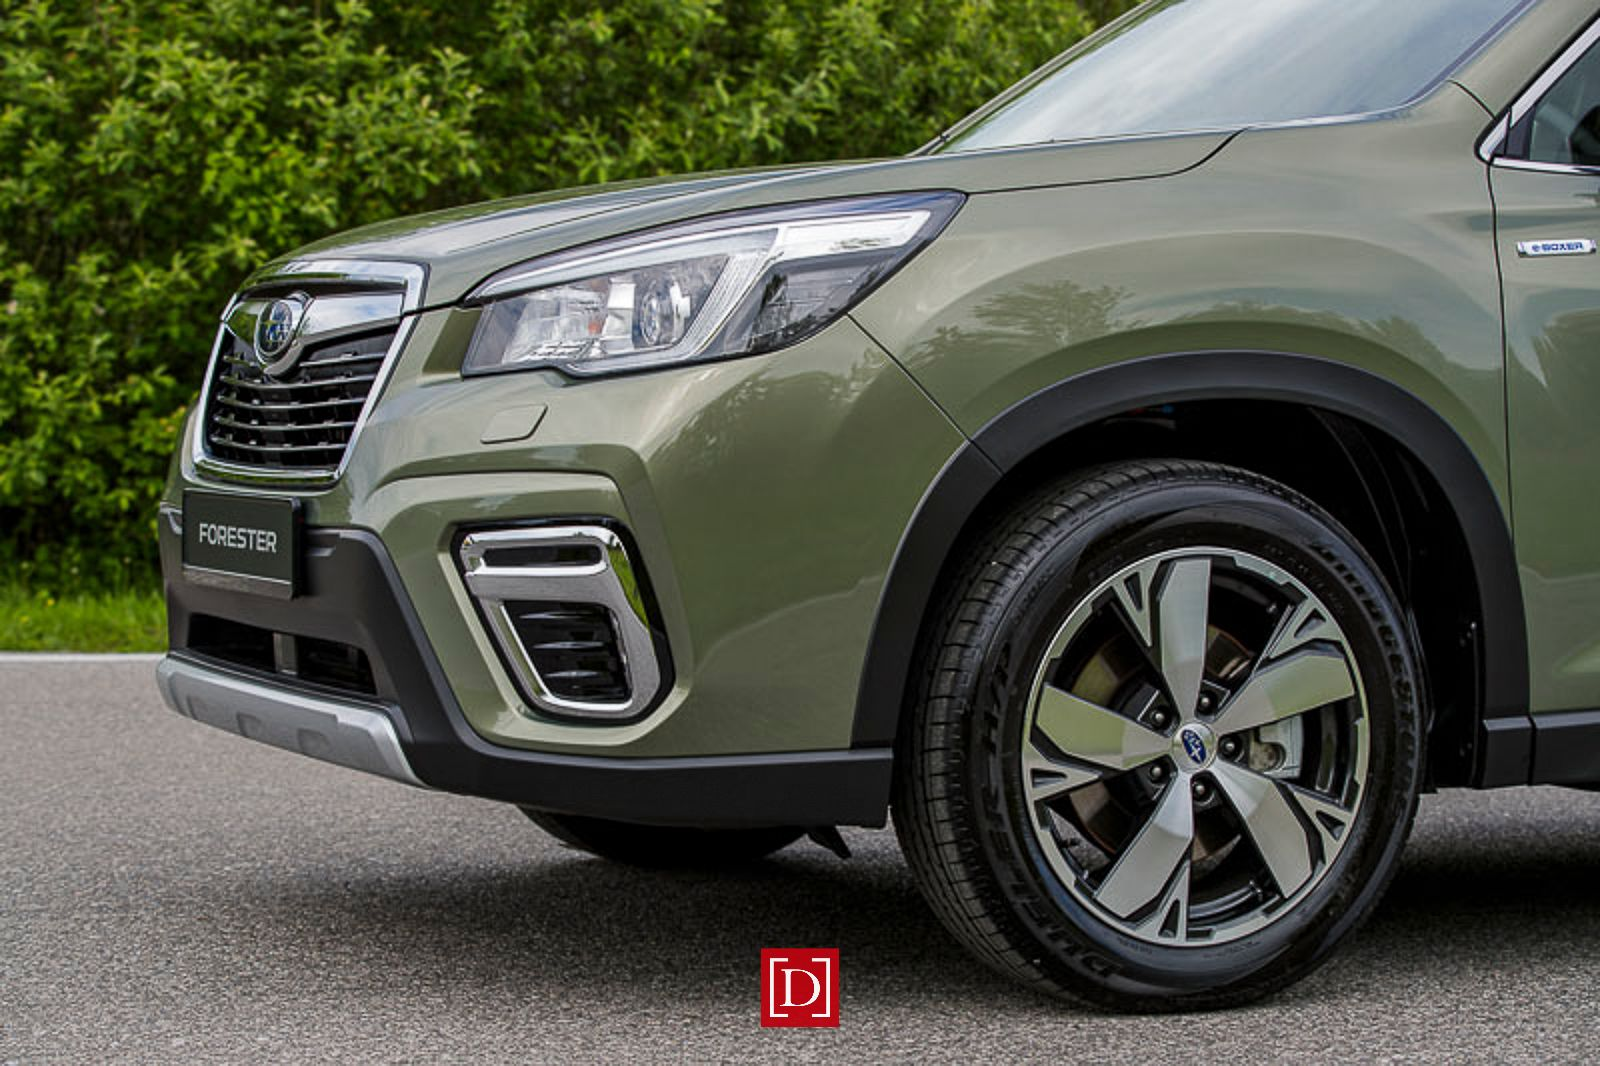 forester-e-boxer_low-021-22725